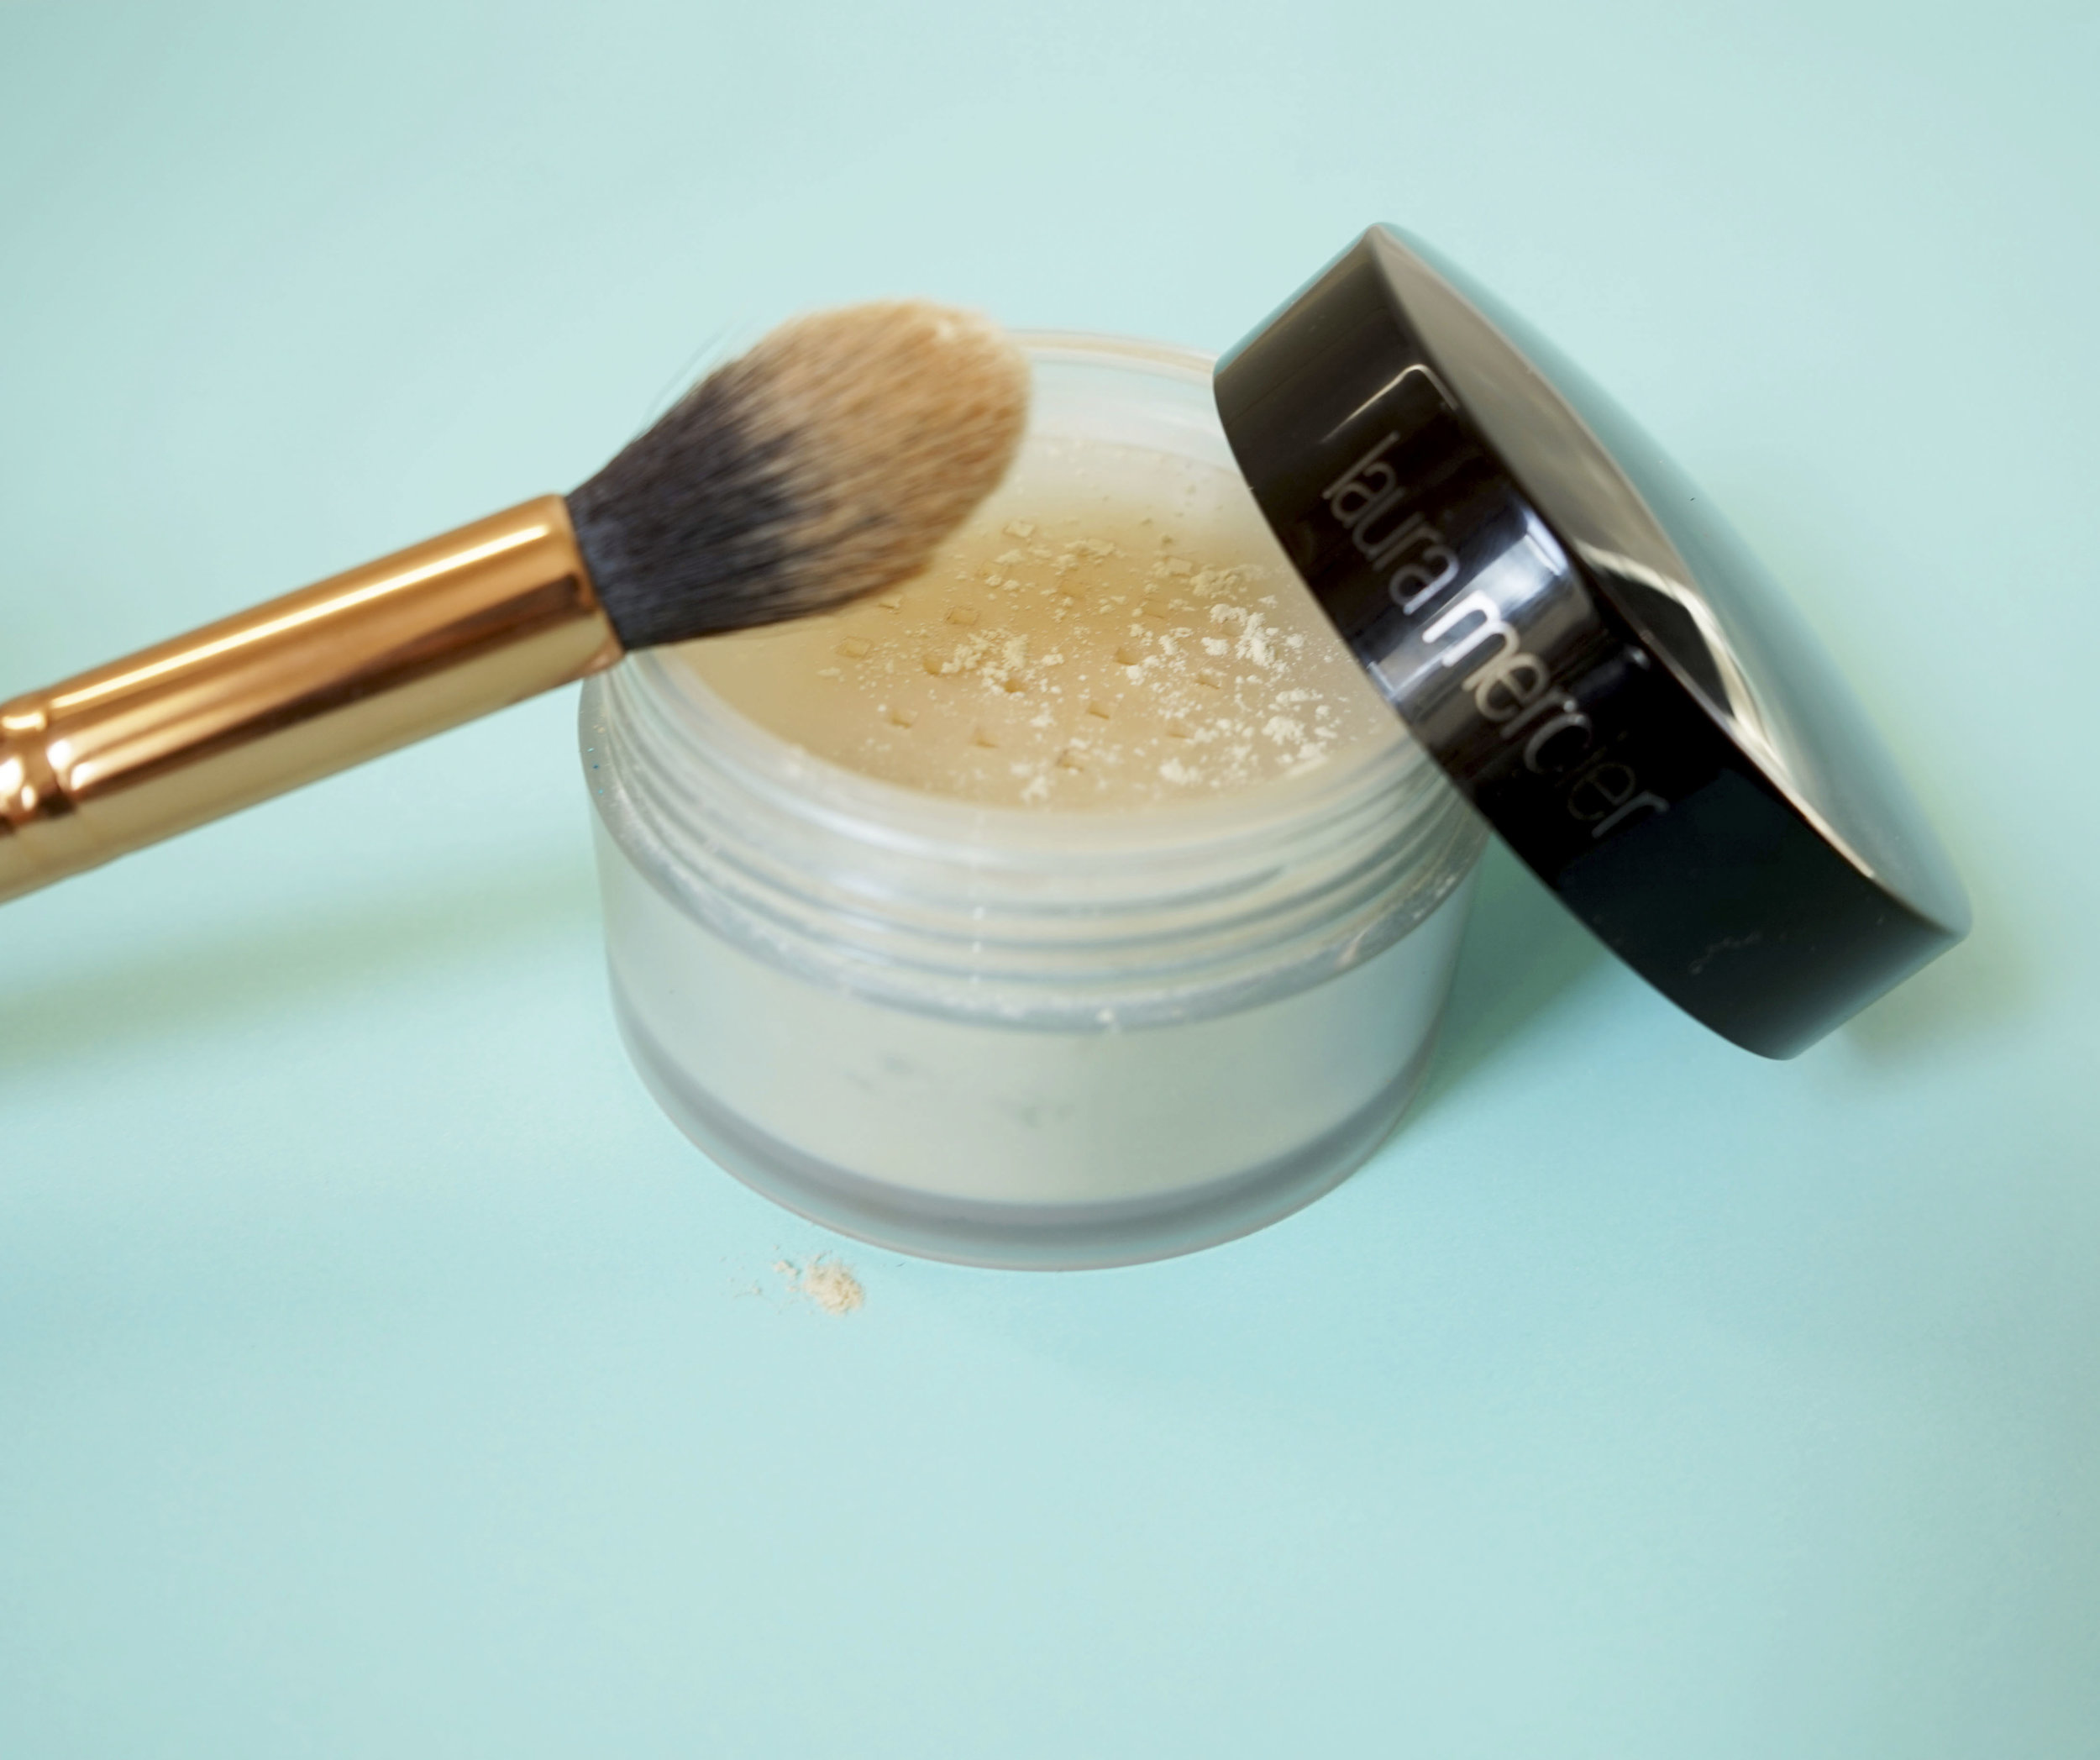 17. Concealer- - Does your under eye concealer crease?Well I've got a solution! After you use concealer, apply translucent powder with a makeup brush. This makes a hugeeee difference and it also helps make the look feel more natural.